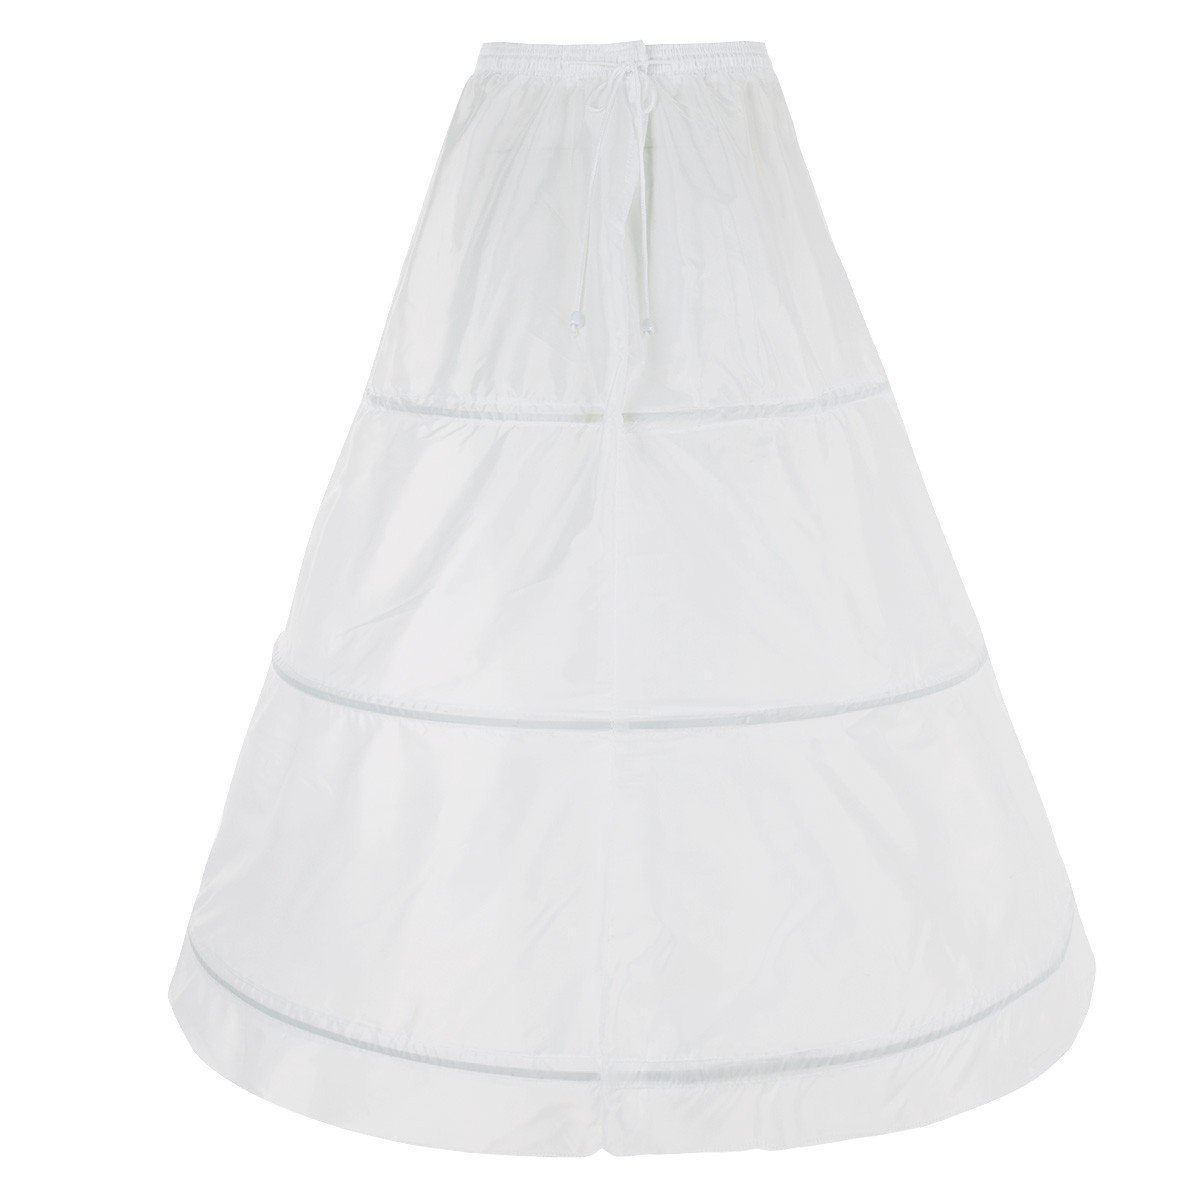 TiaoBug Flower Girls Bridal Wedding Dress 3 Hoops Petticoat Underskirt Crinoline Slip White #7(Women)